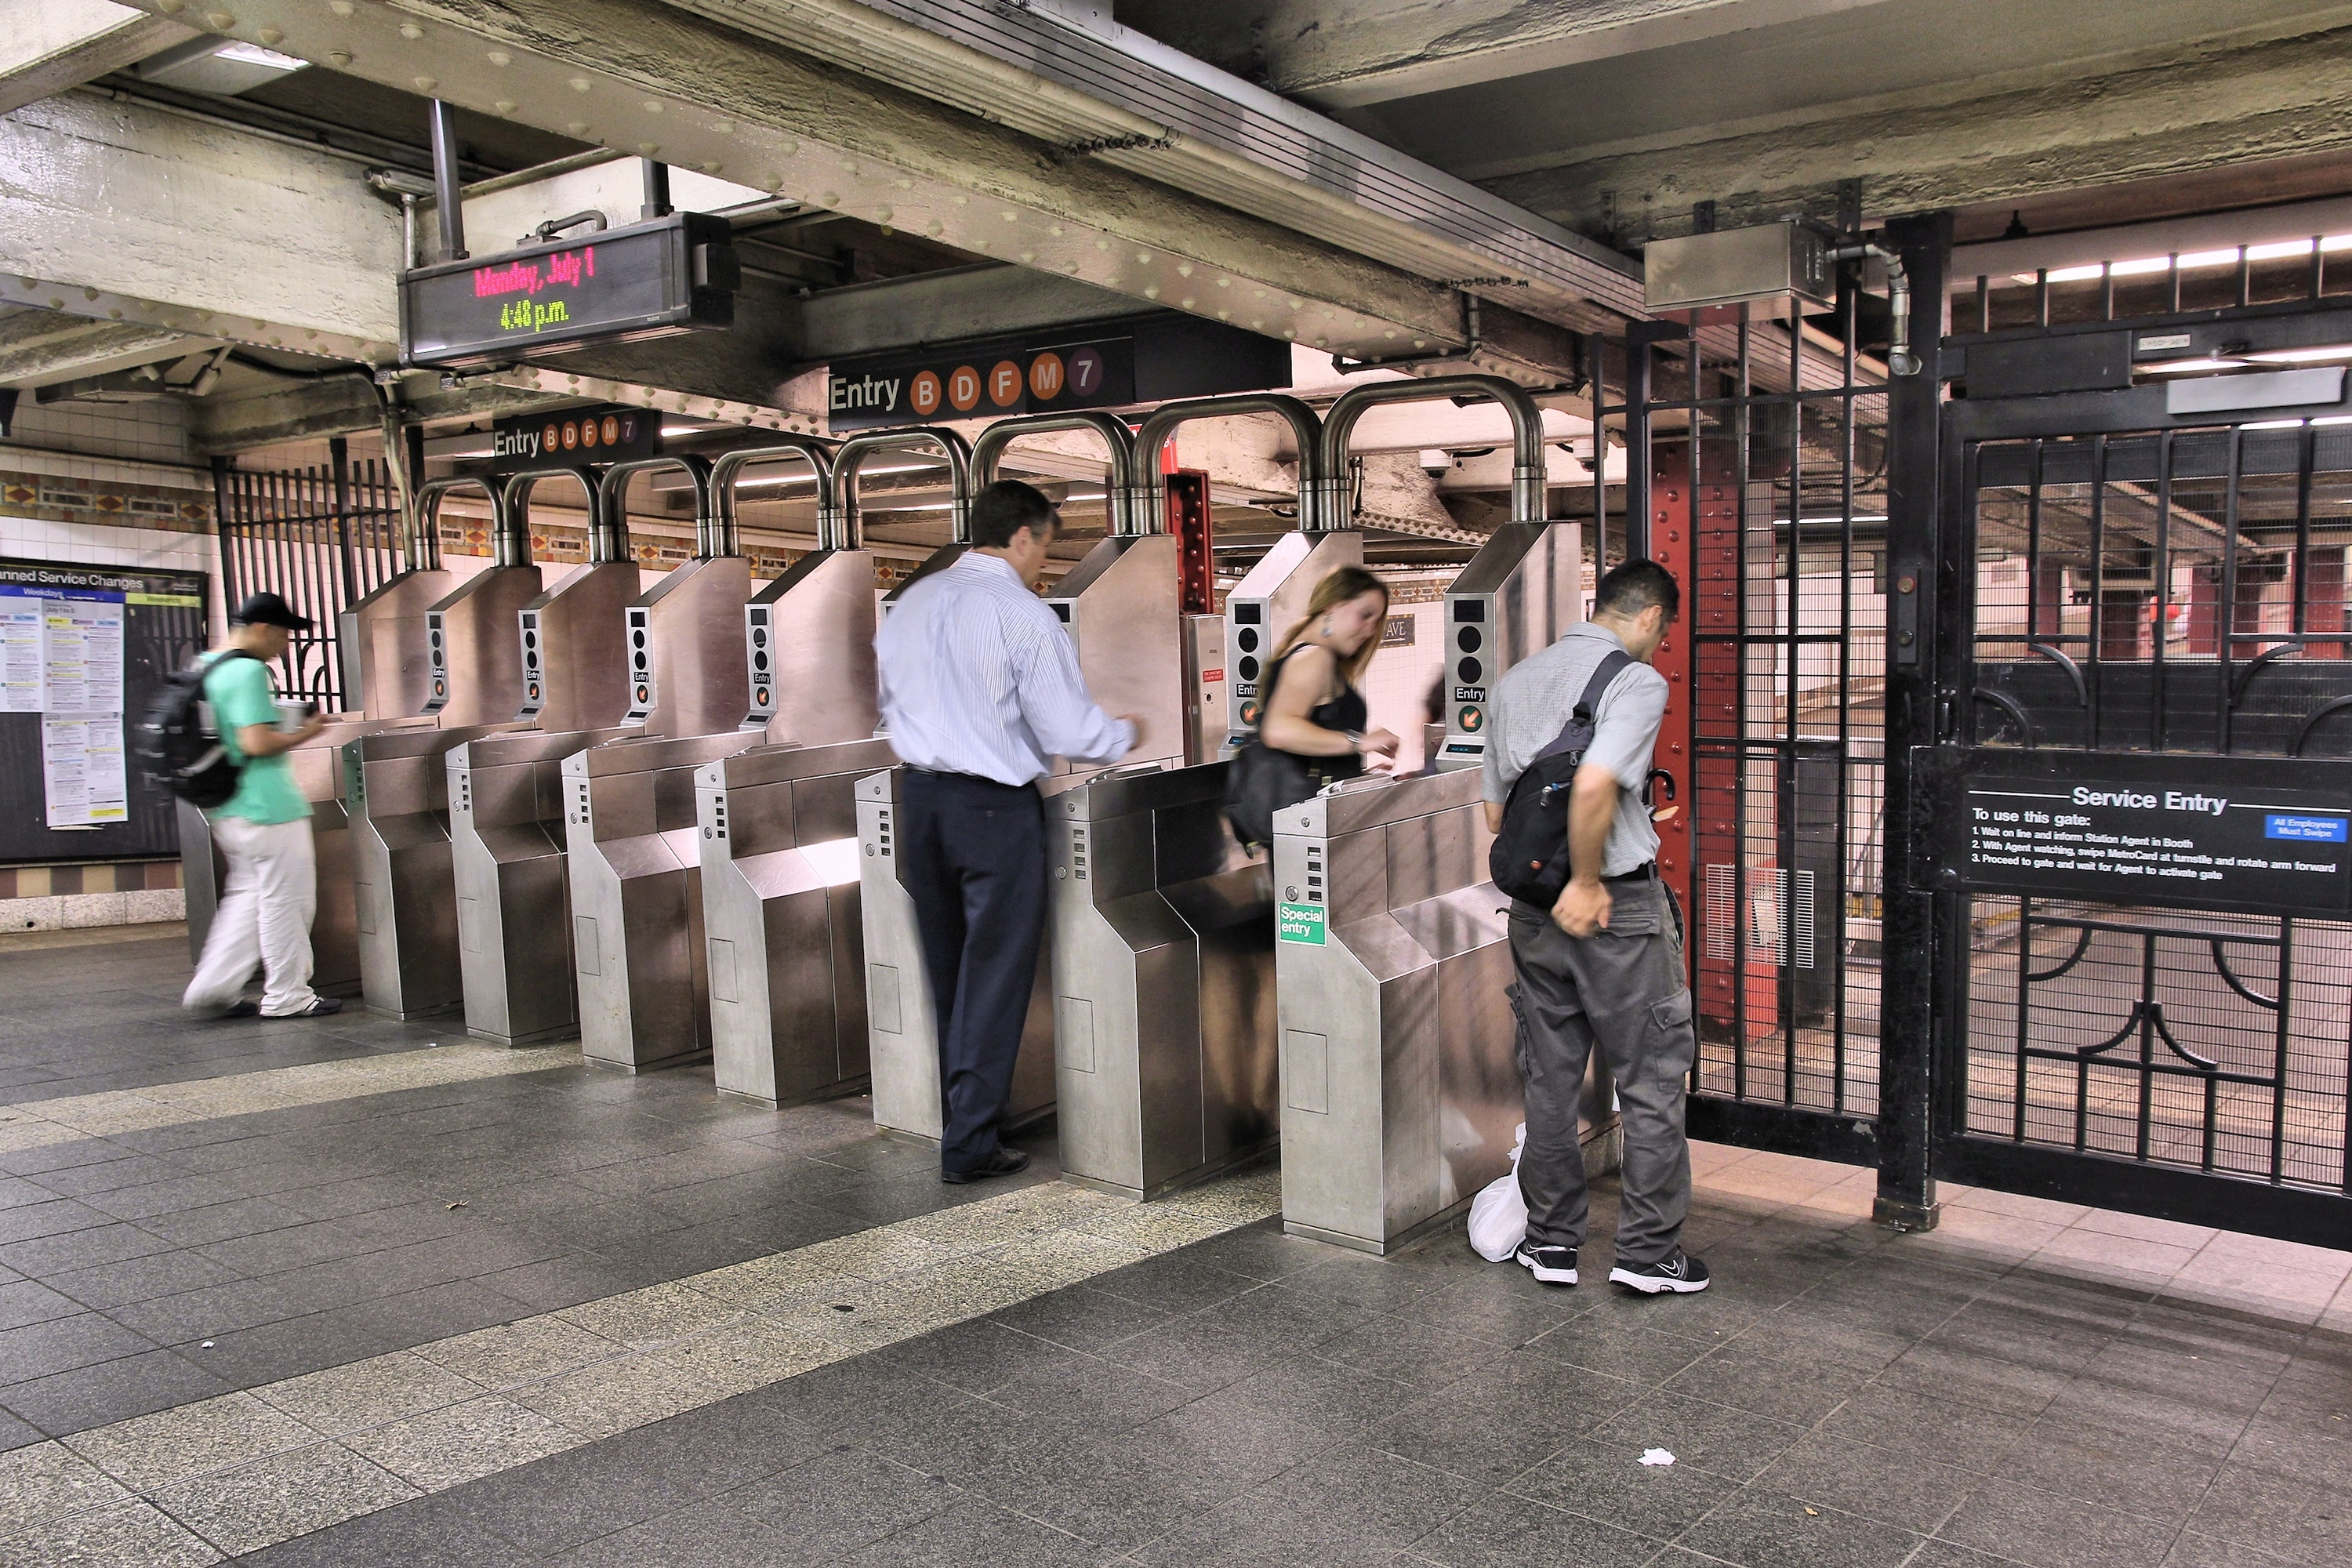 Sh*t: Subway fare is going up to $3